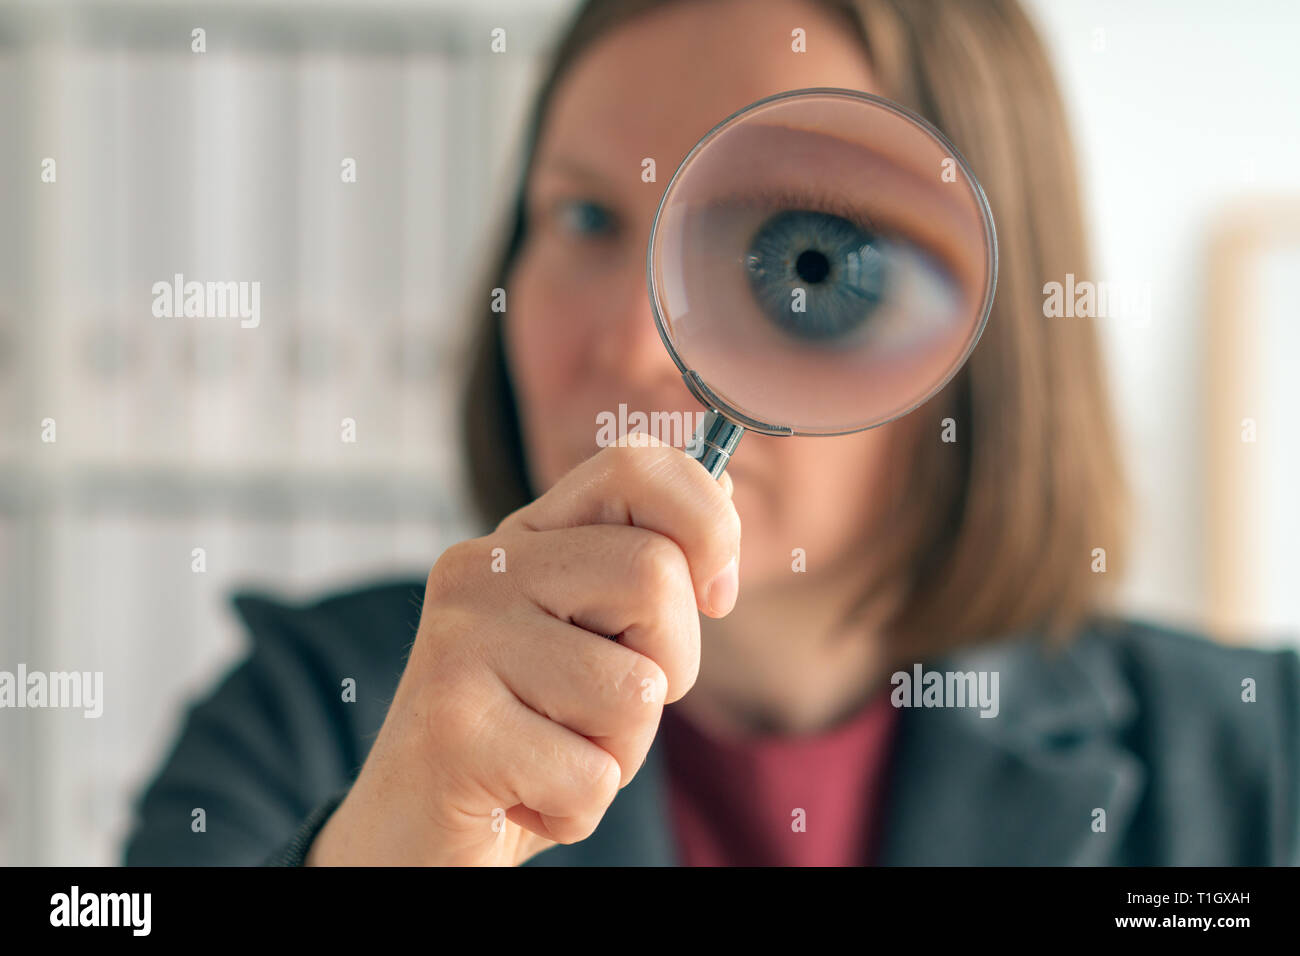 Businesswoman with magnifying glass doing business financial auditing, examination and evaluation of financial statements. - Stock Image